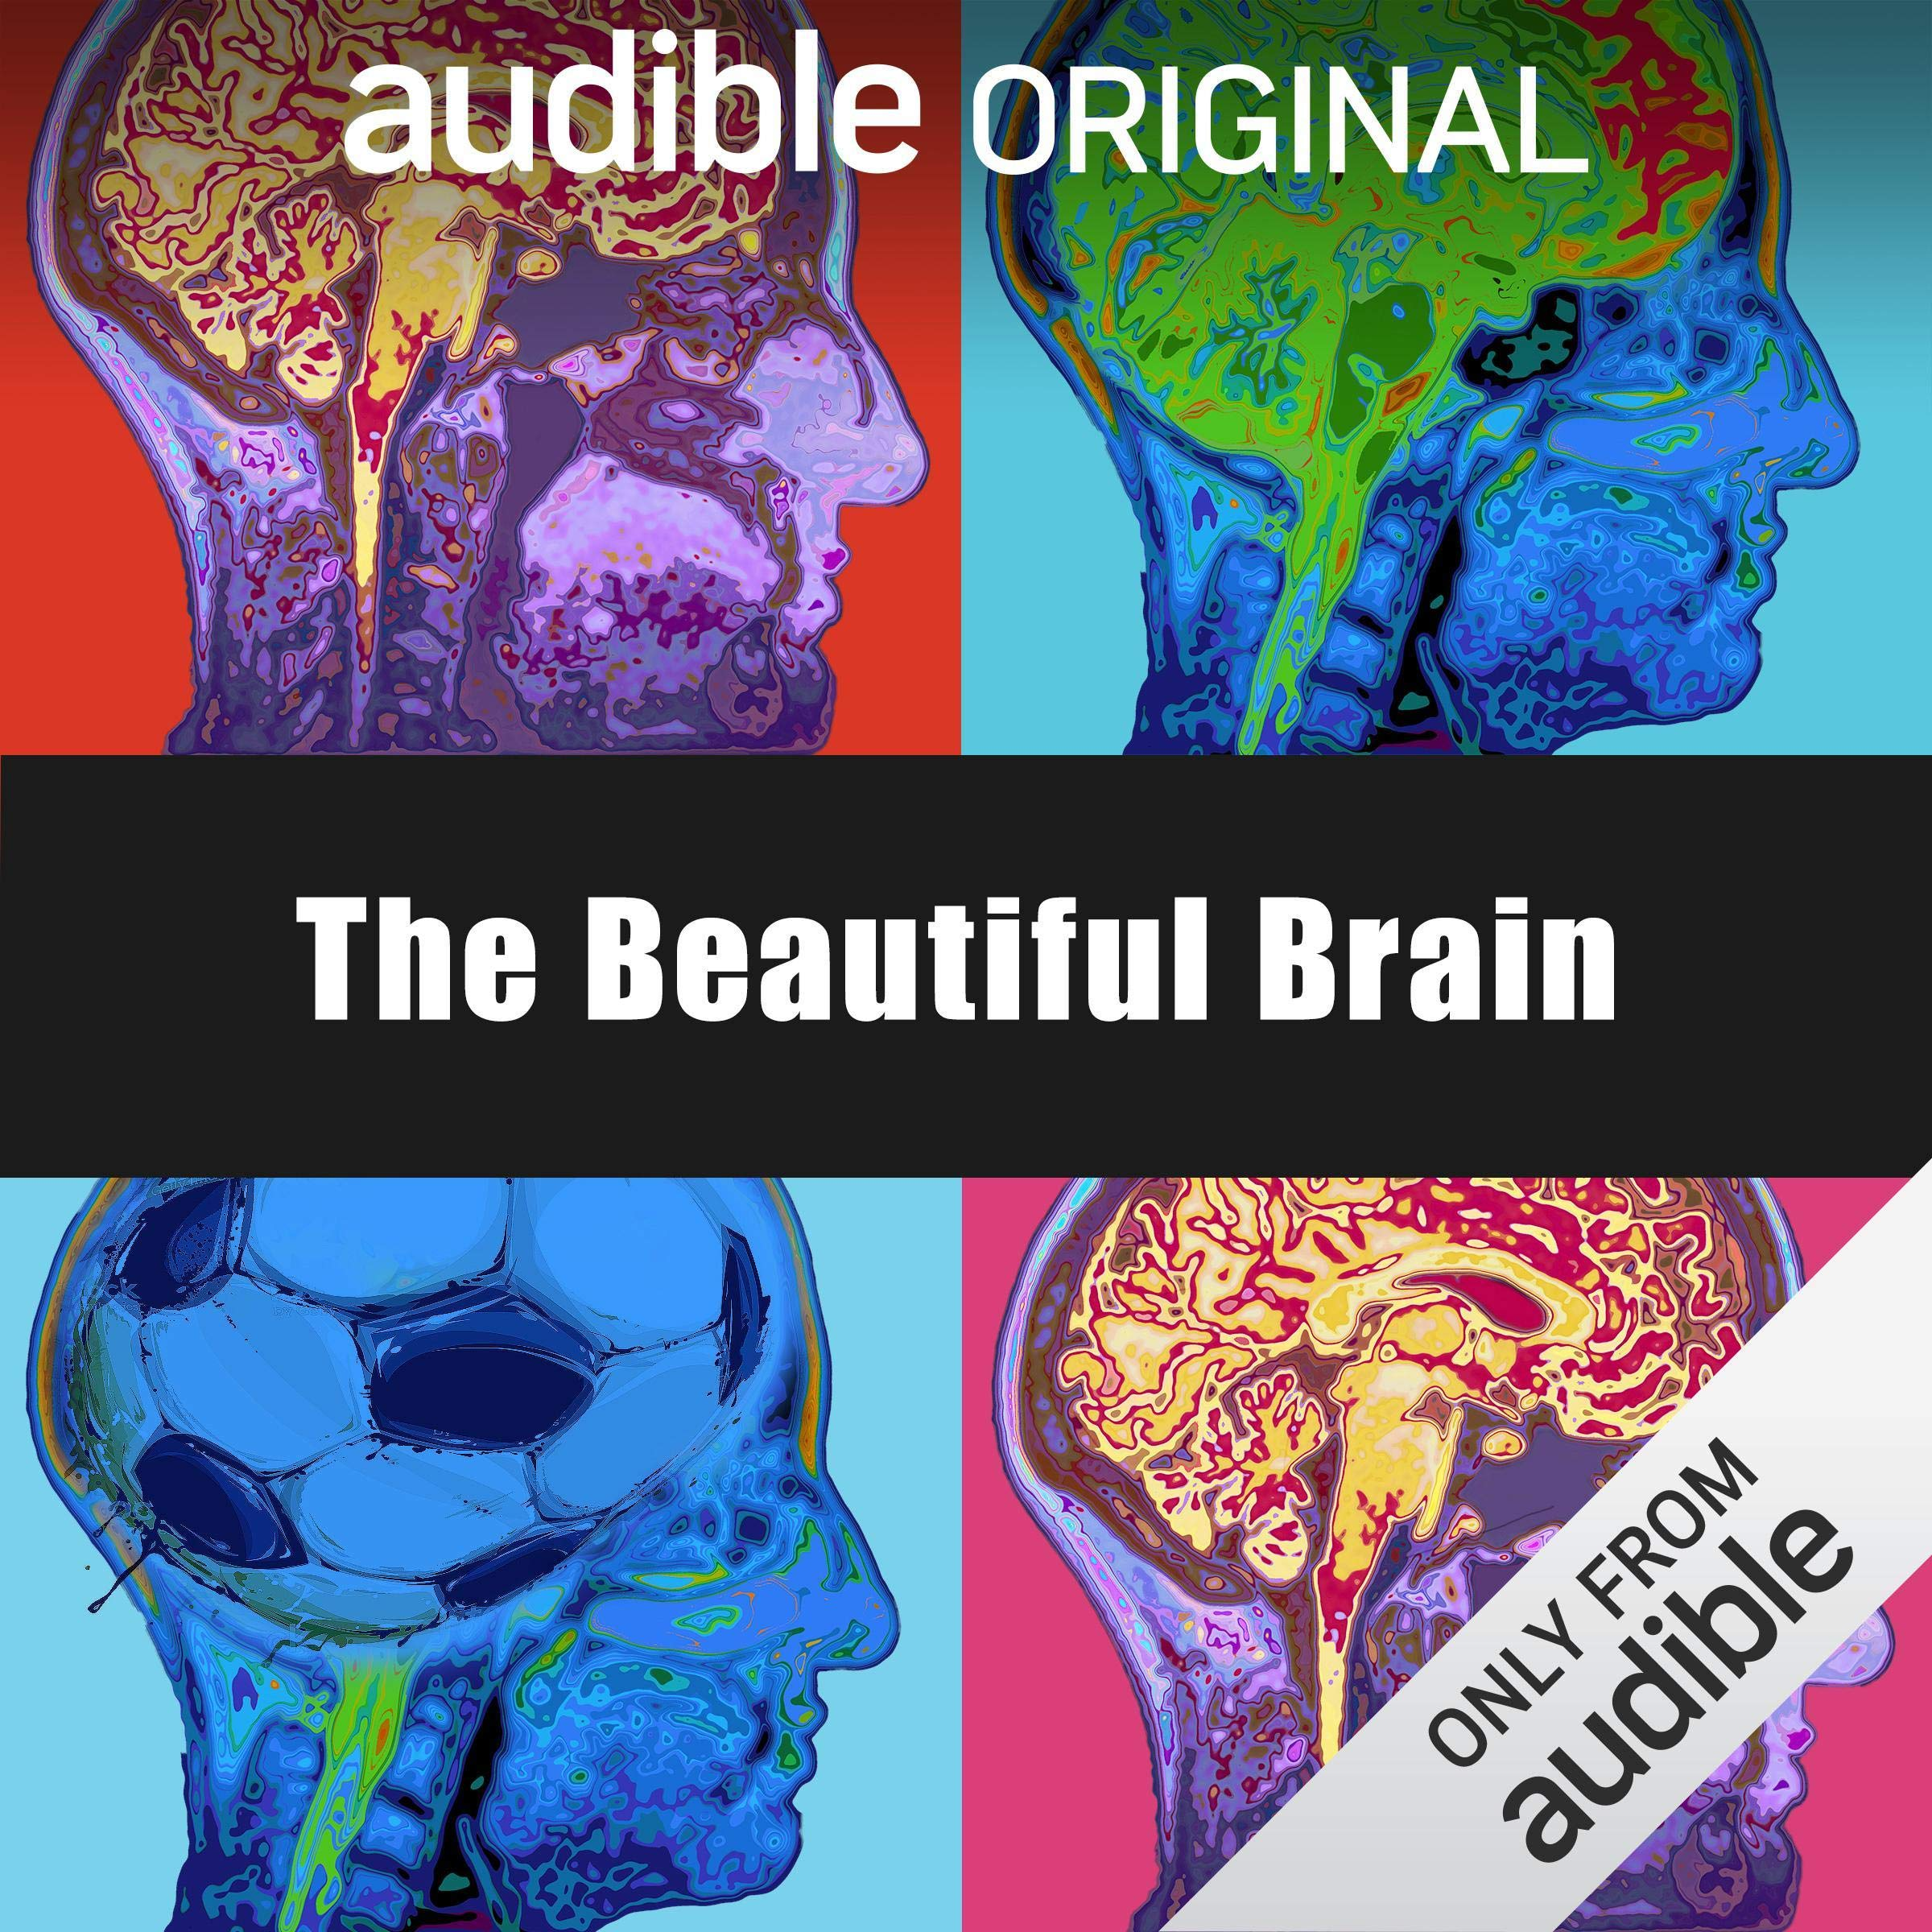 The Beautiful Brain. Listen free now.